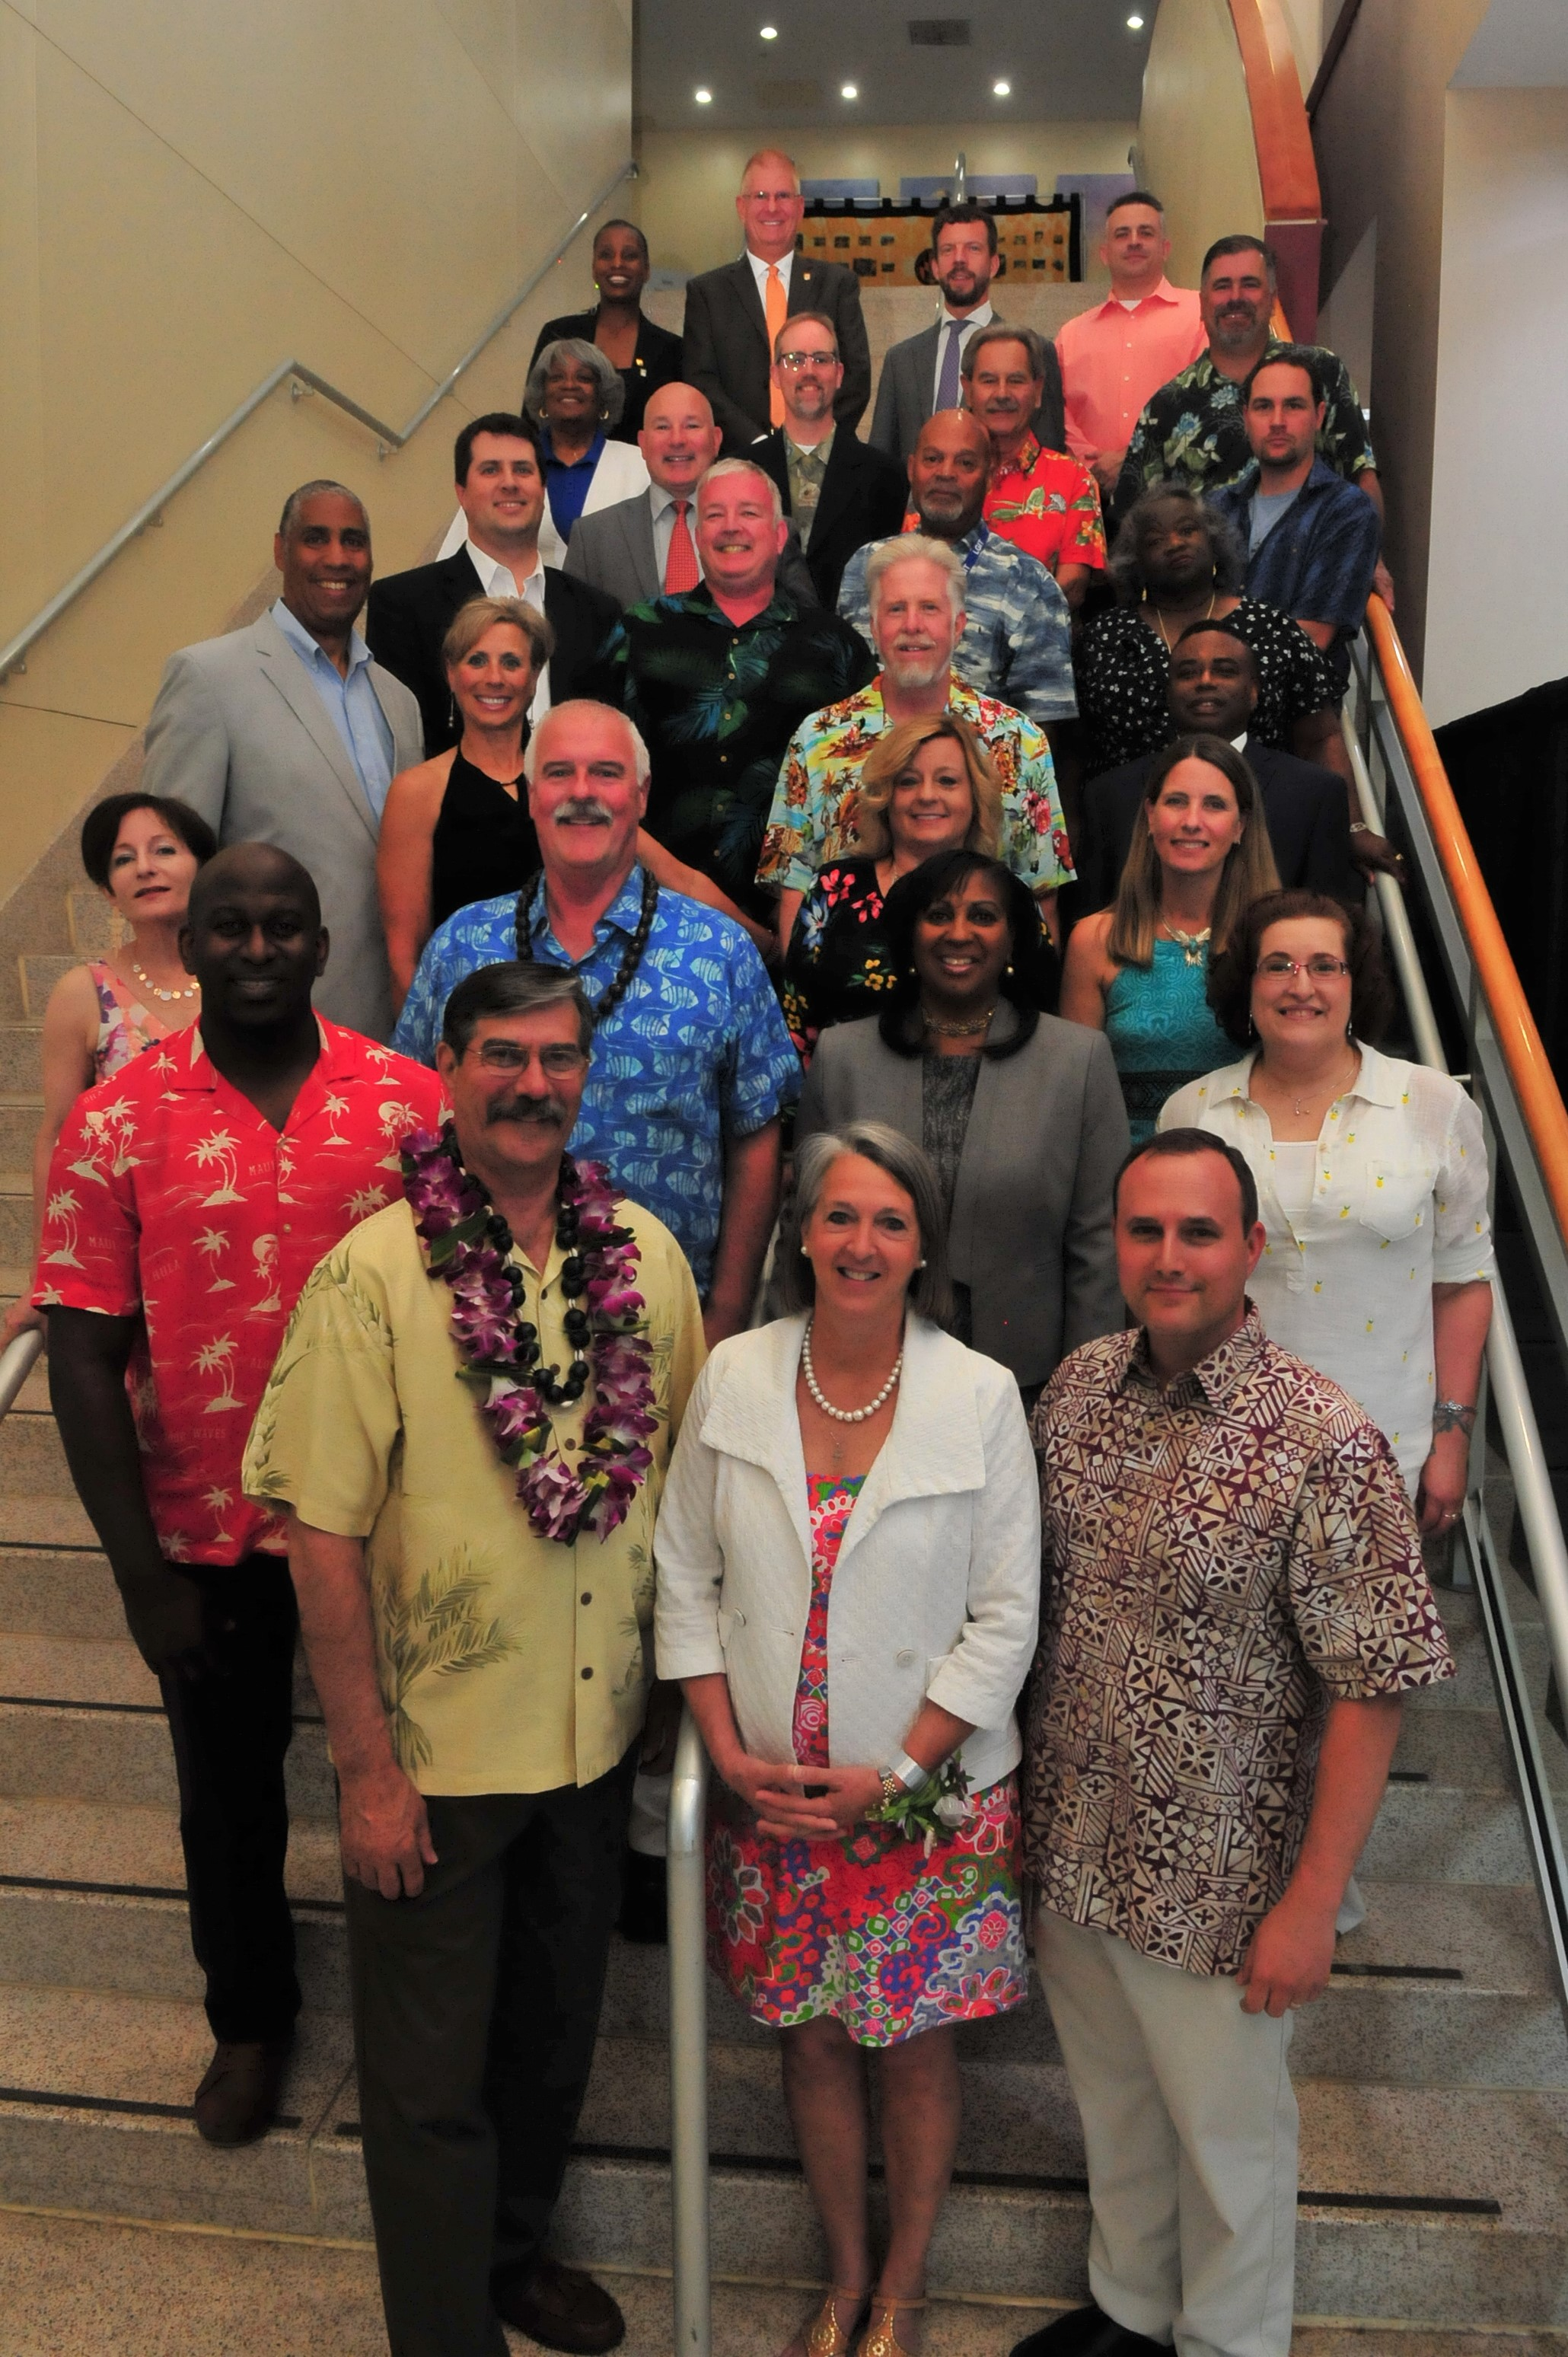 2018-2019 MML Board of Directors - June 12, 2018